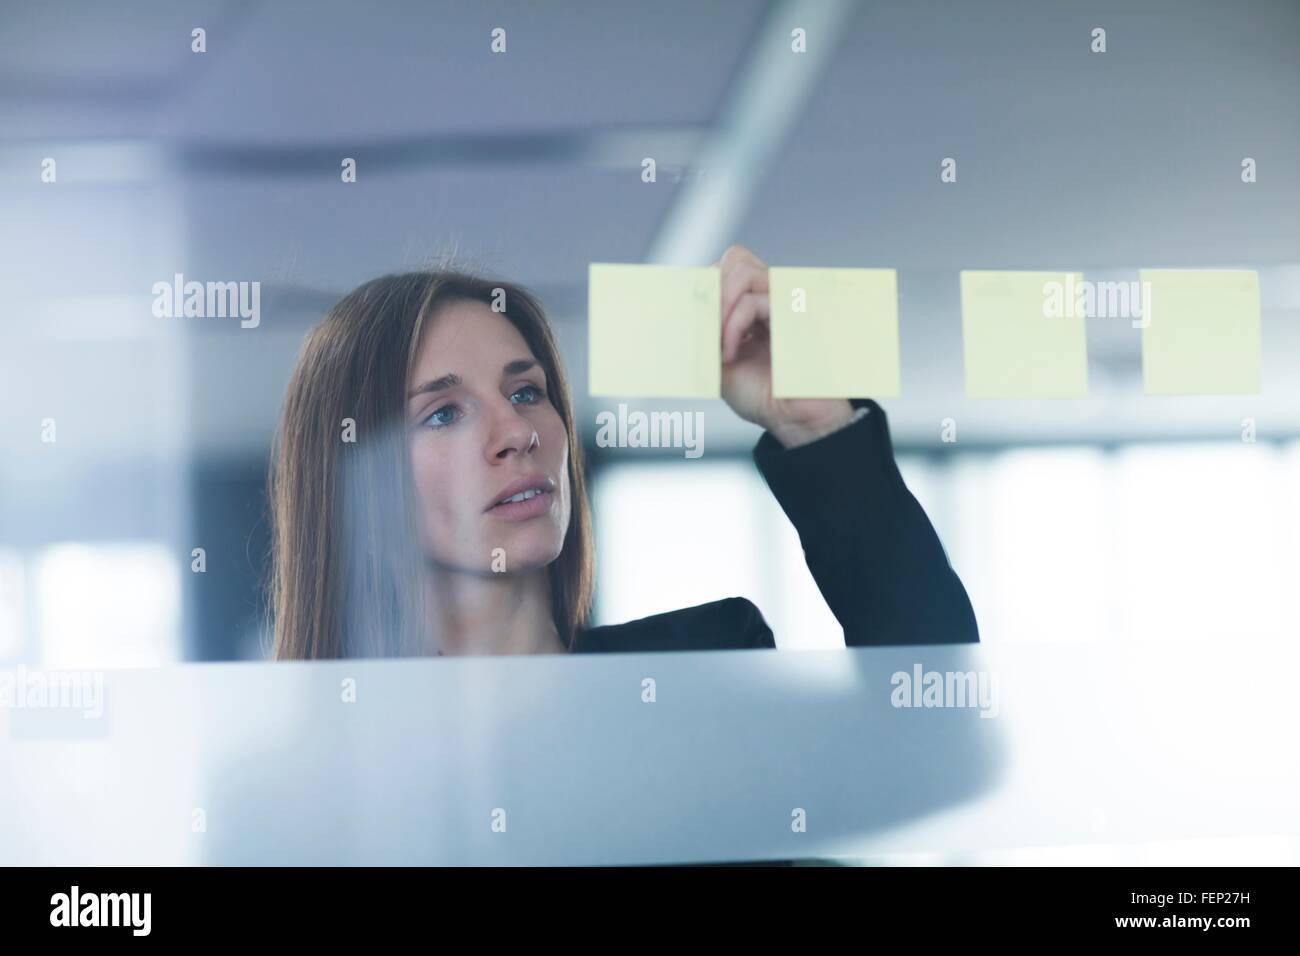 View through window of young woman writing on post it note stuck to glass Stock Photo